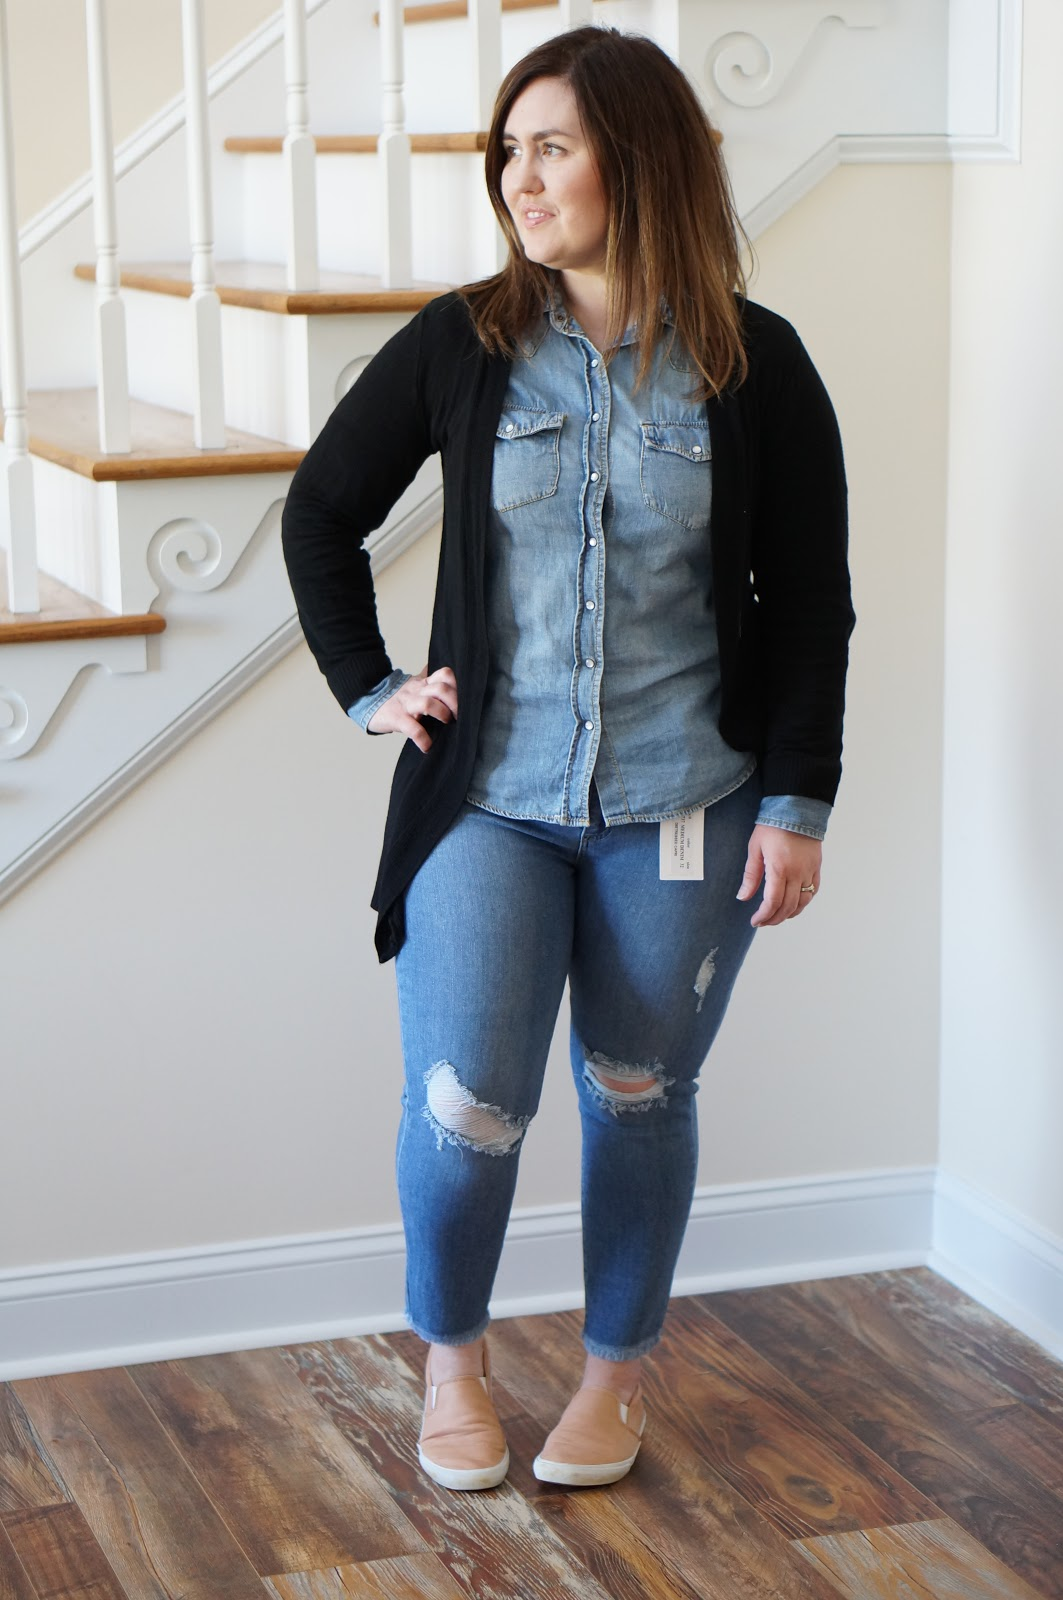 Popular North Carolina style blogger Rebecca Lately shares her Stitch Fix outfits for May 2018.  Click here to see what she got & what she thought!